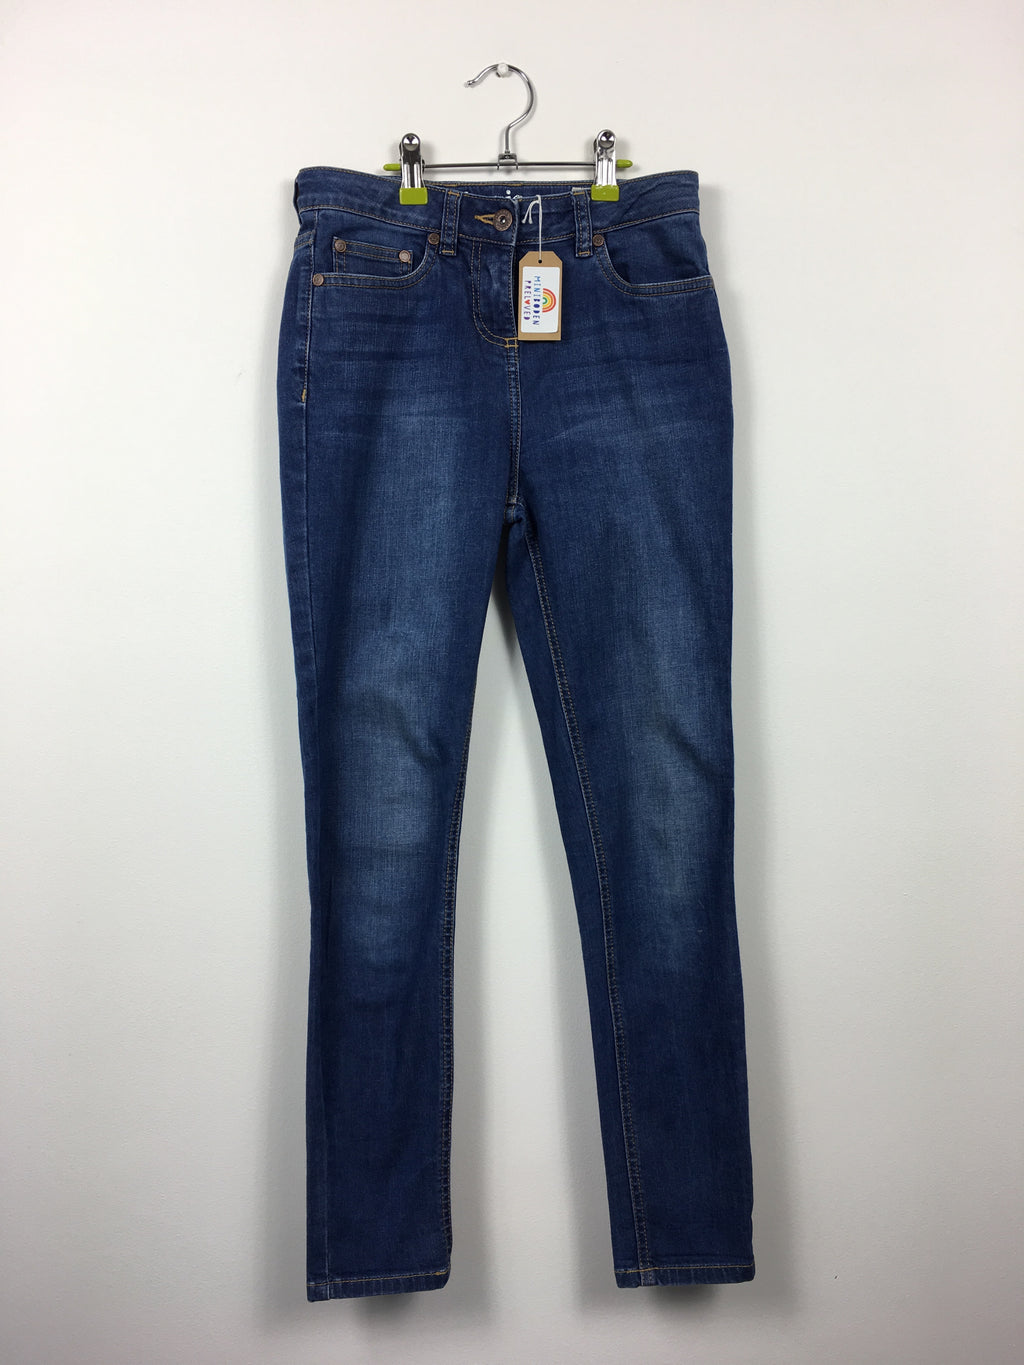 Blue Regular Fit Jeans (9-10 Years)